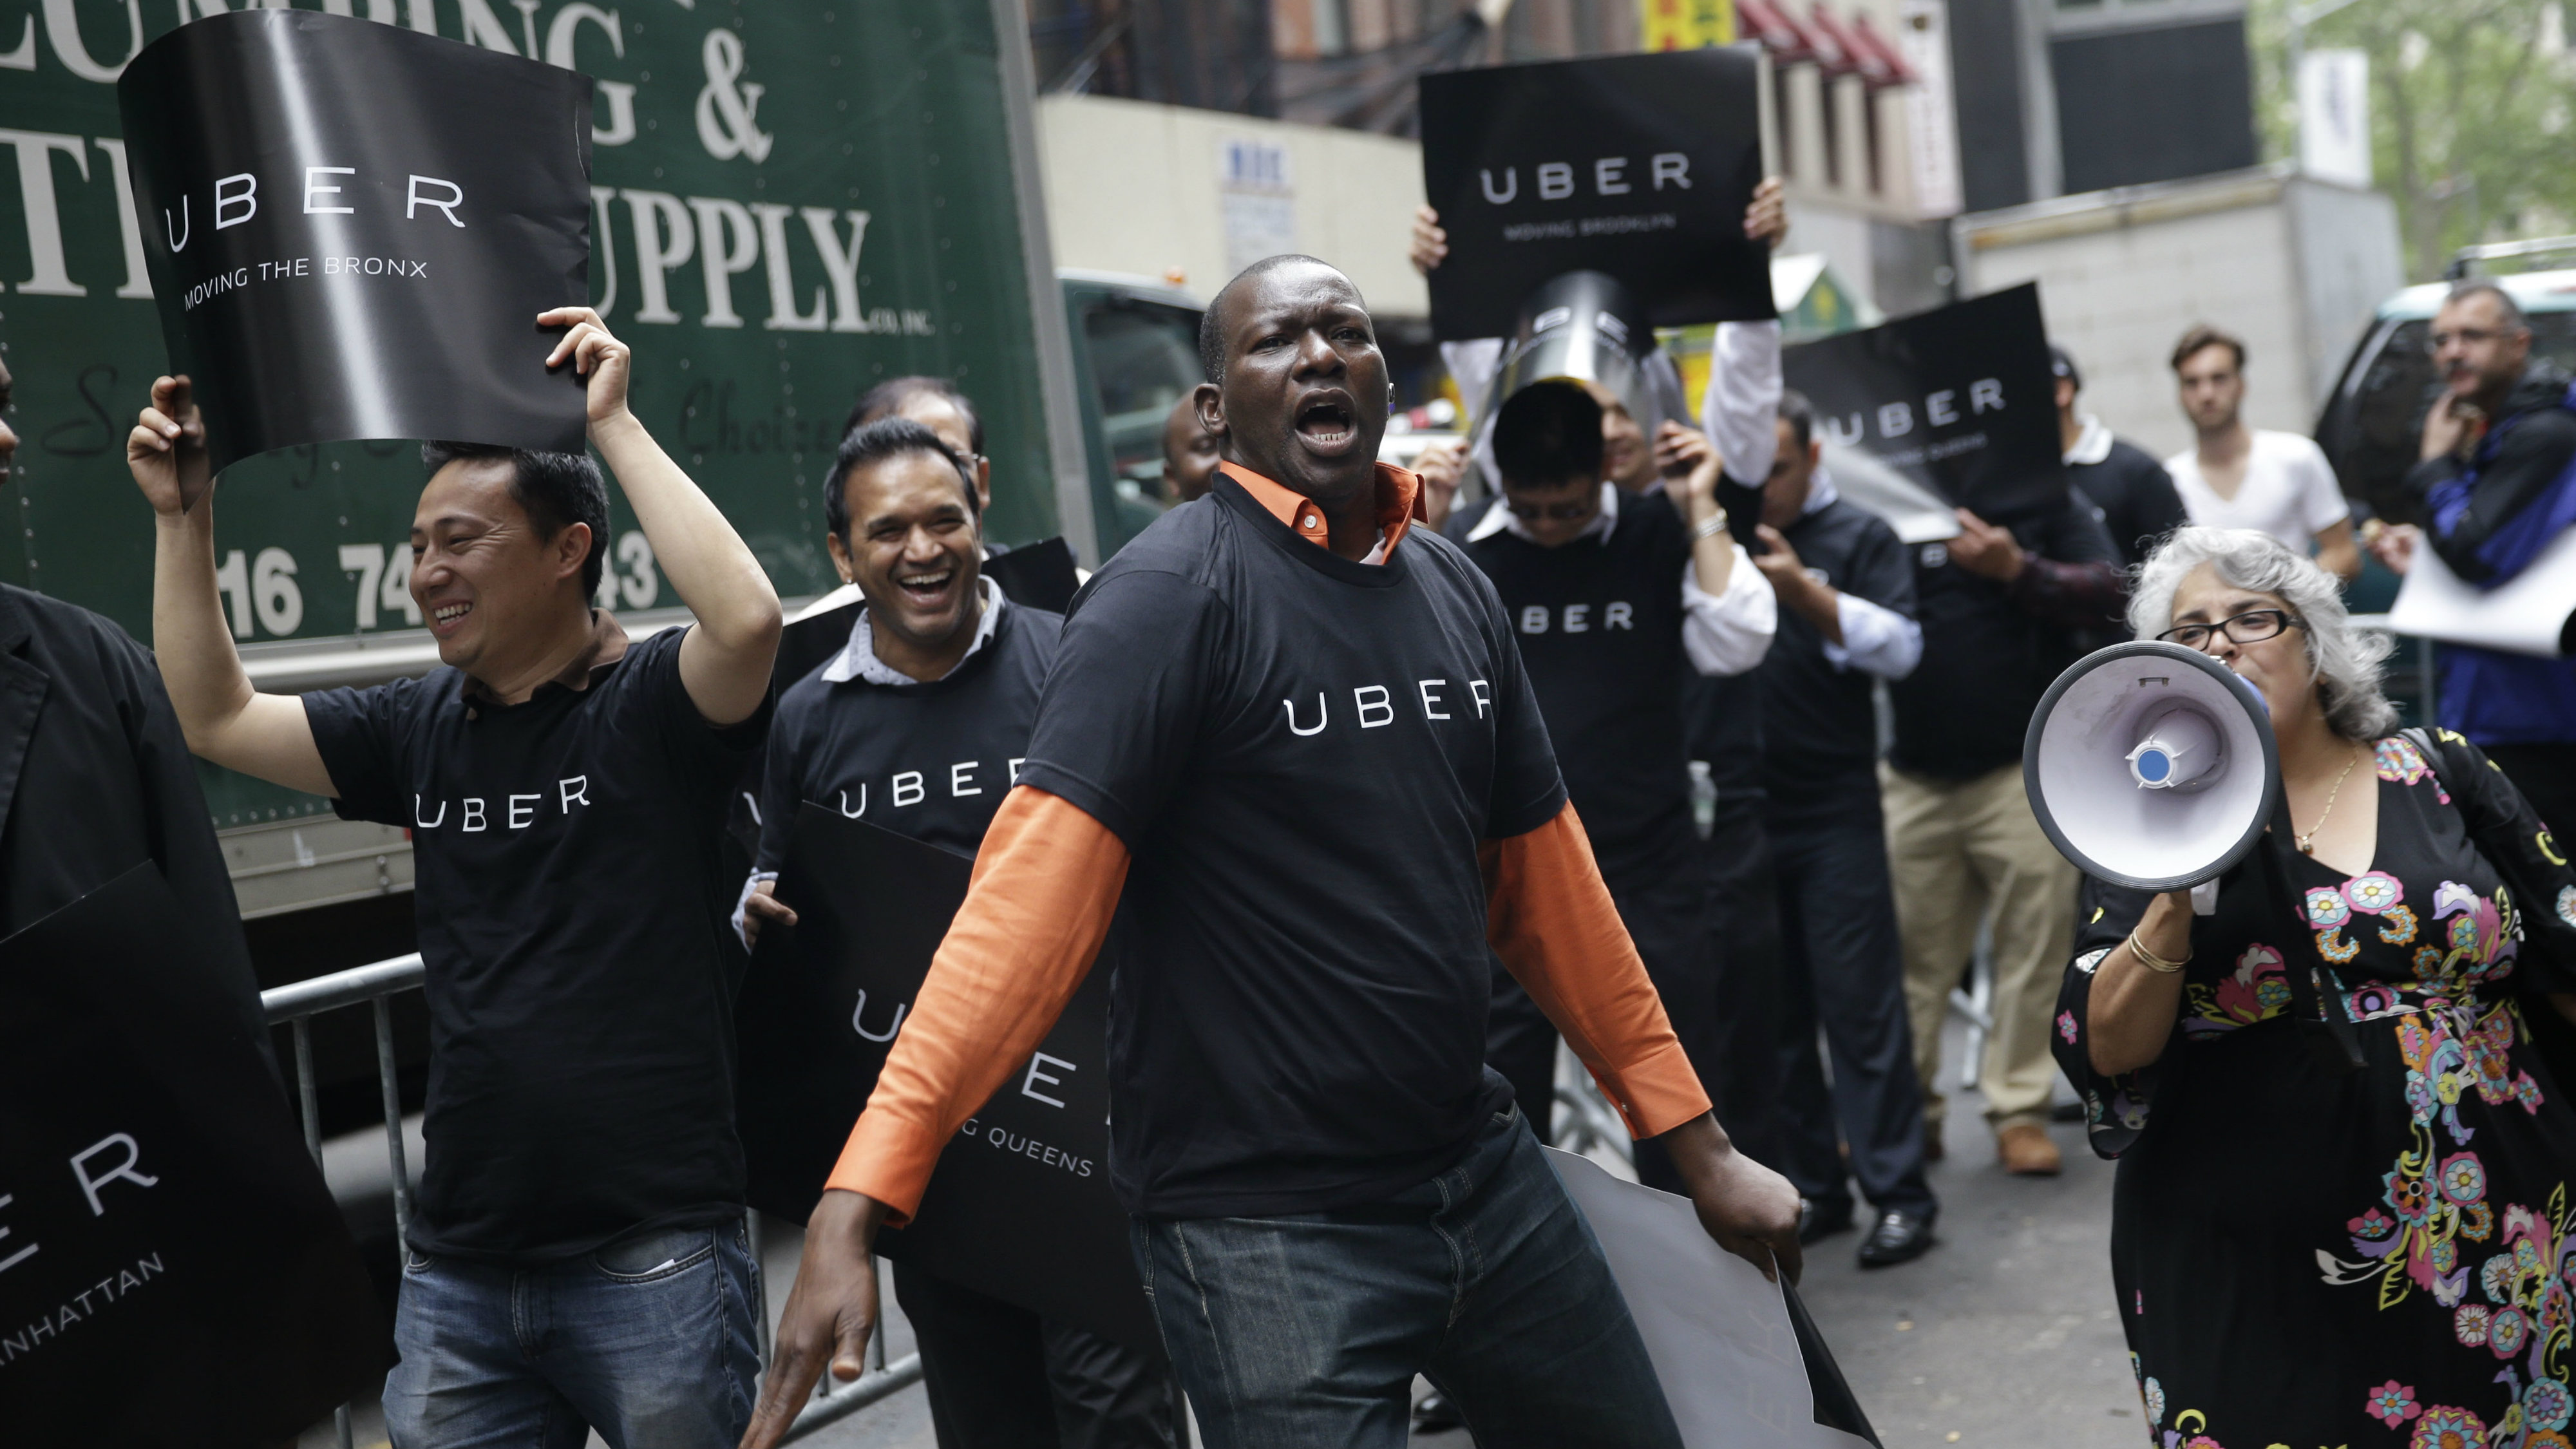 Uber drivers and their supporters protest in front of the offices of the Taxi and Limousine Commission in New York, Thursday, May 28, 2015. Uber and Lyft are pushing back against a New York City effort to regulate app-based car services. The proposal before the Taxi and Limousine Commission would require car services that riders can summon with their phones to comply with many of the rules that govern the yellow cabs they compete with. (AP Photo/Seth Wenig)